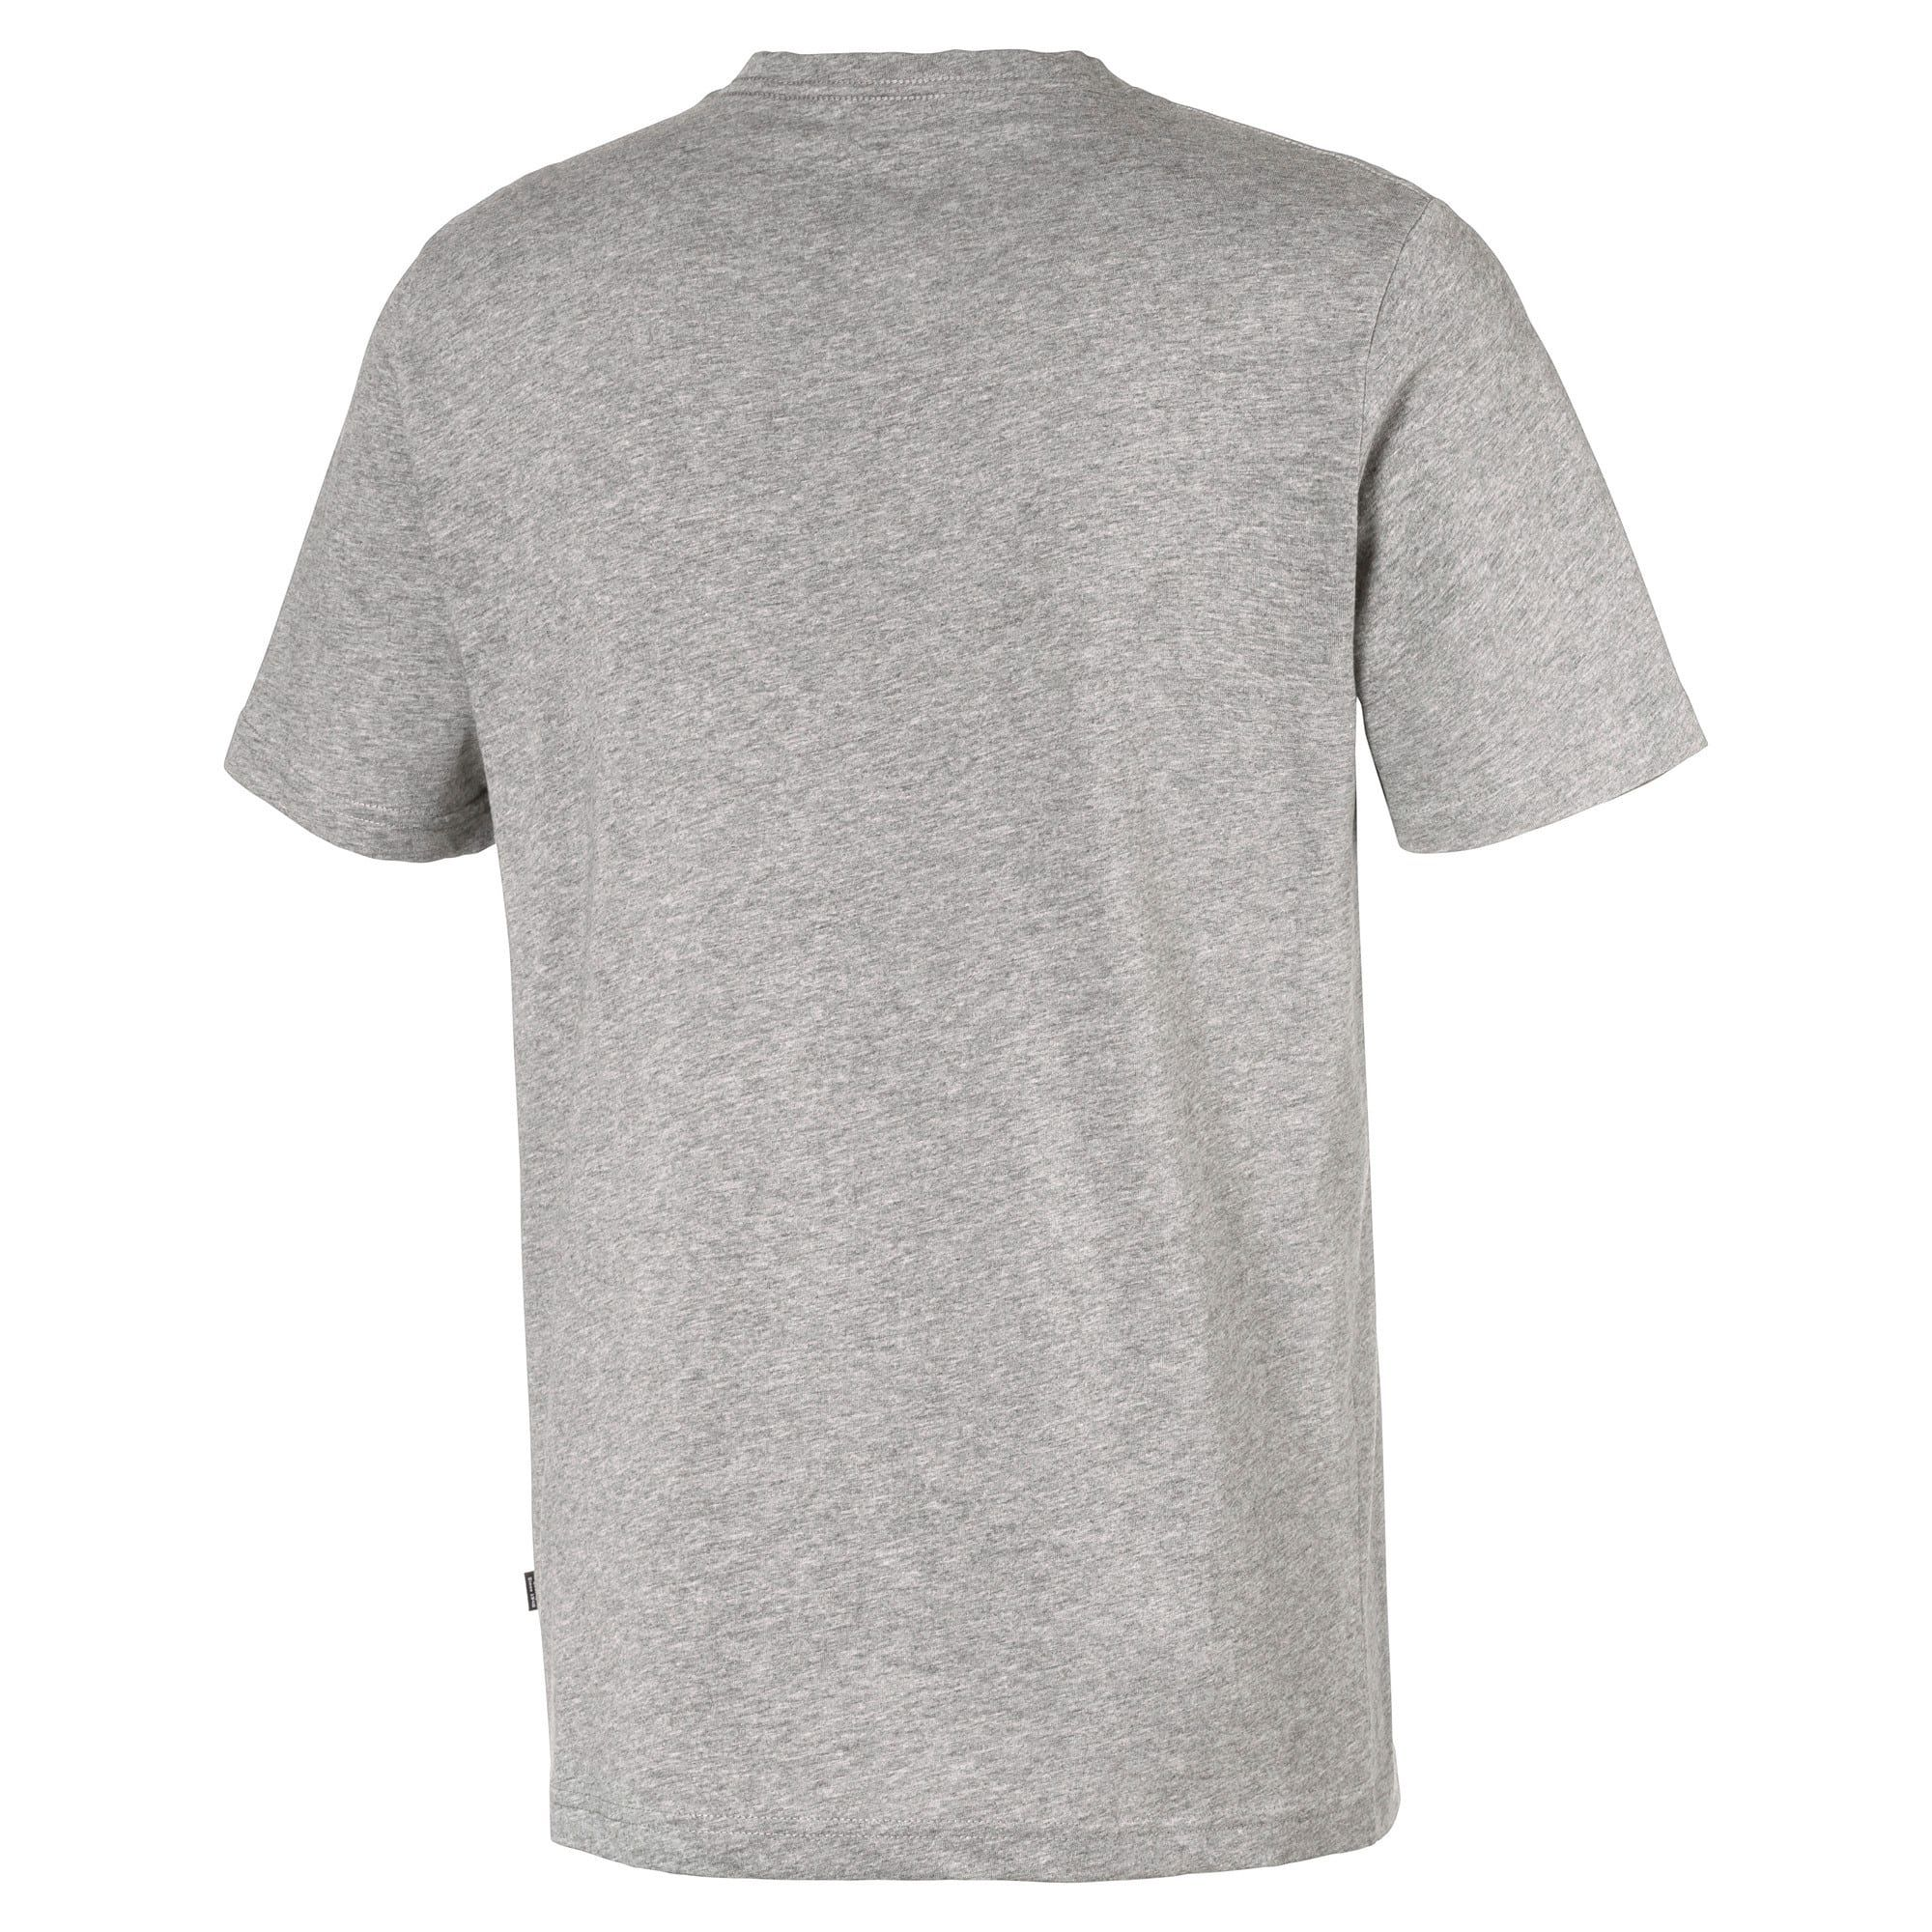 PUMA Essentials V-Neck Men's T-Shirt in Medium Grey Heather size X Large